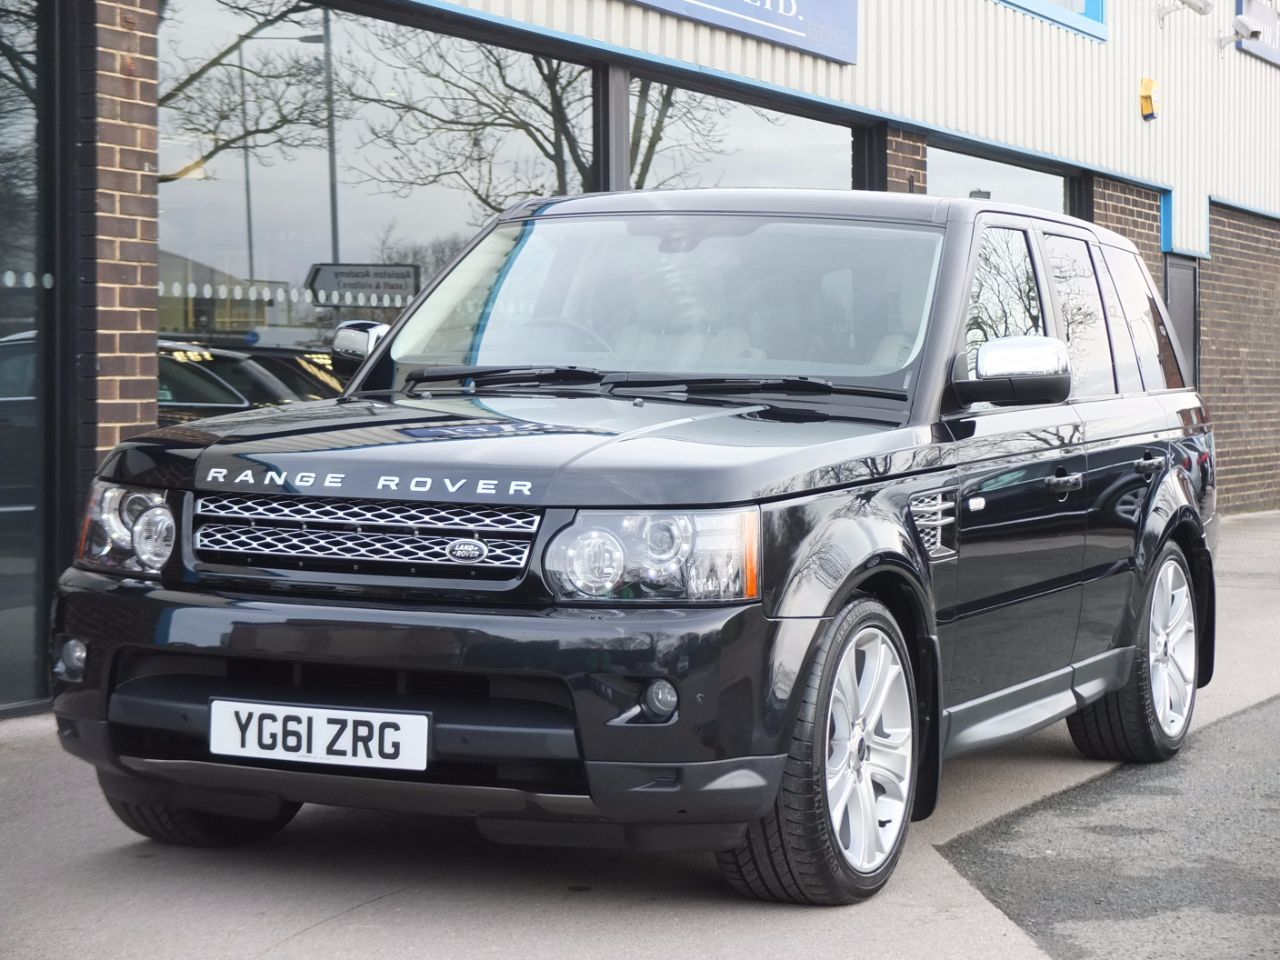 Land Rover Range Rover Sport 3.0 SDV6 HSE Luxury Estate Diesel Sumatra Black MetallicLand Rover Range Rover Sport 3.0 SDV6 HSE Luxury Estate Diesel Sumatra Black Metallic at fa Roper Ltd Bradford